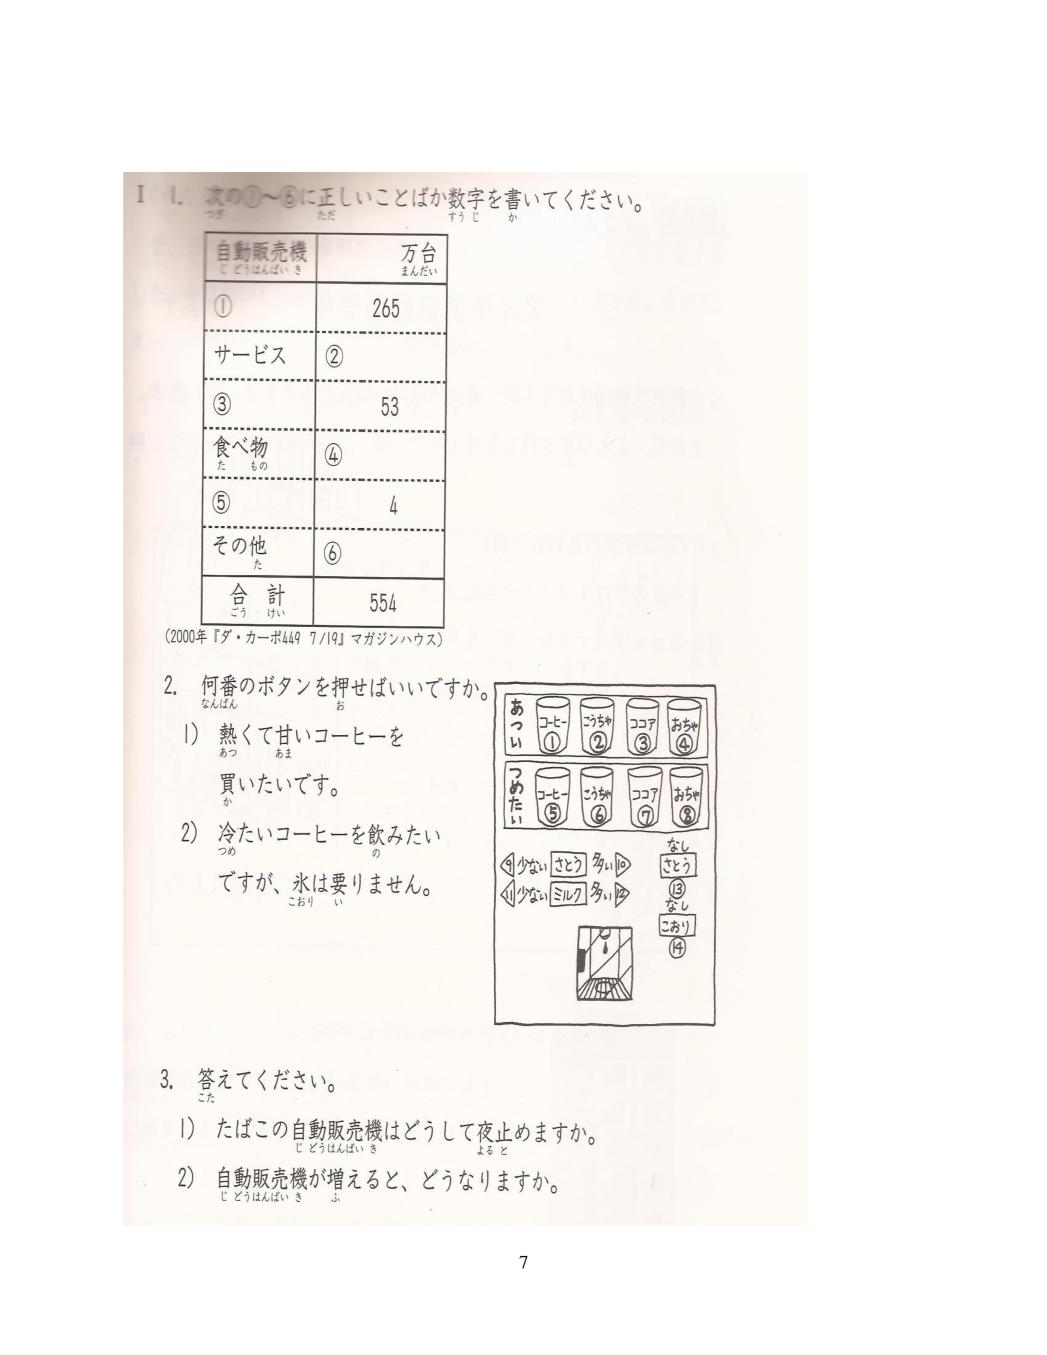 CBSE Sample Papers 2020 for Class 12 – Japanese